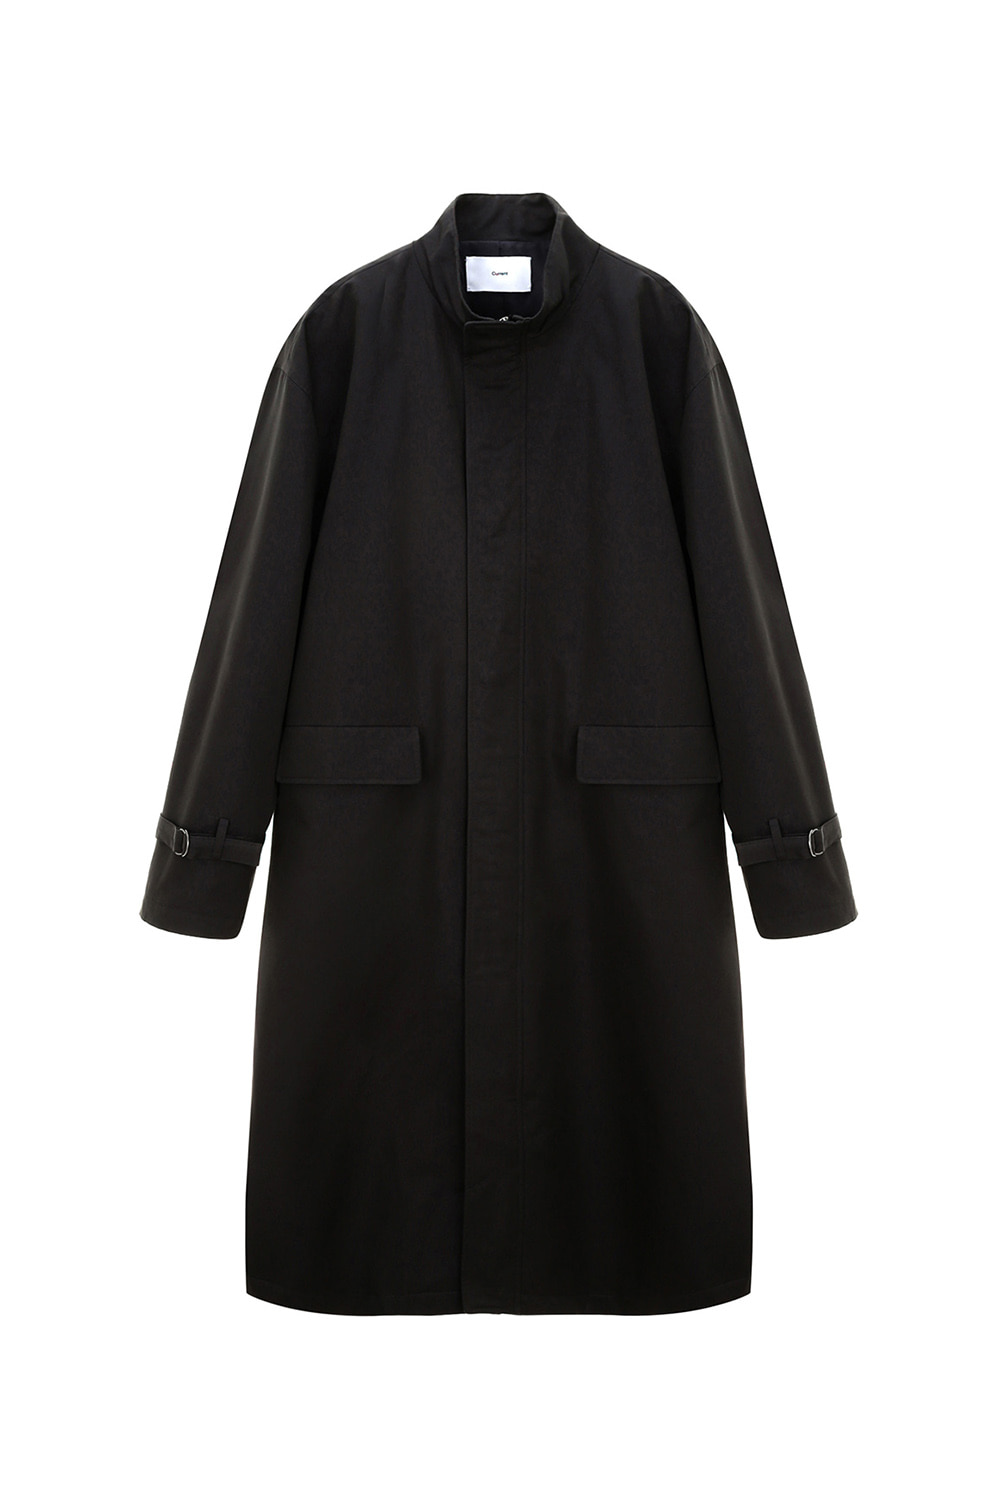 Mods Coat Men [Black]